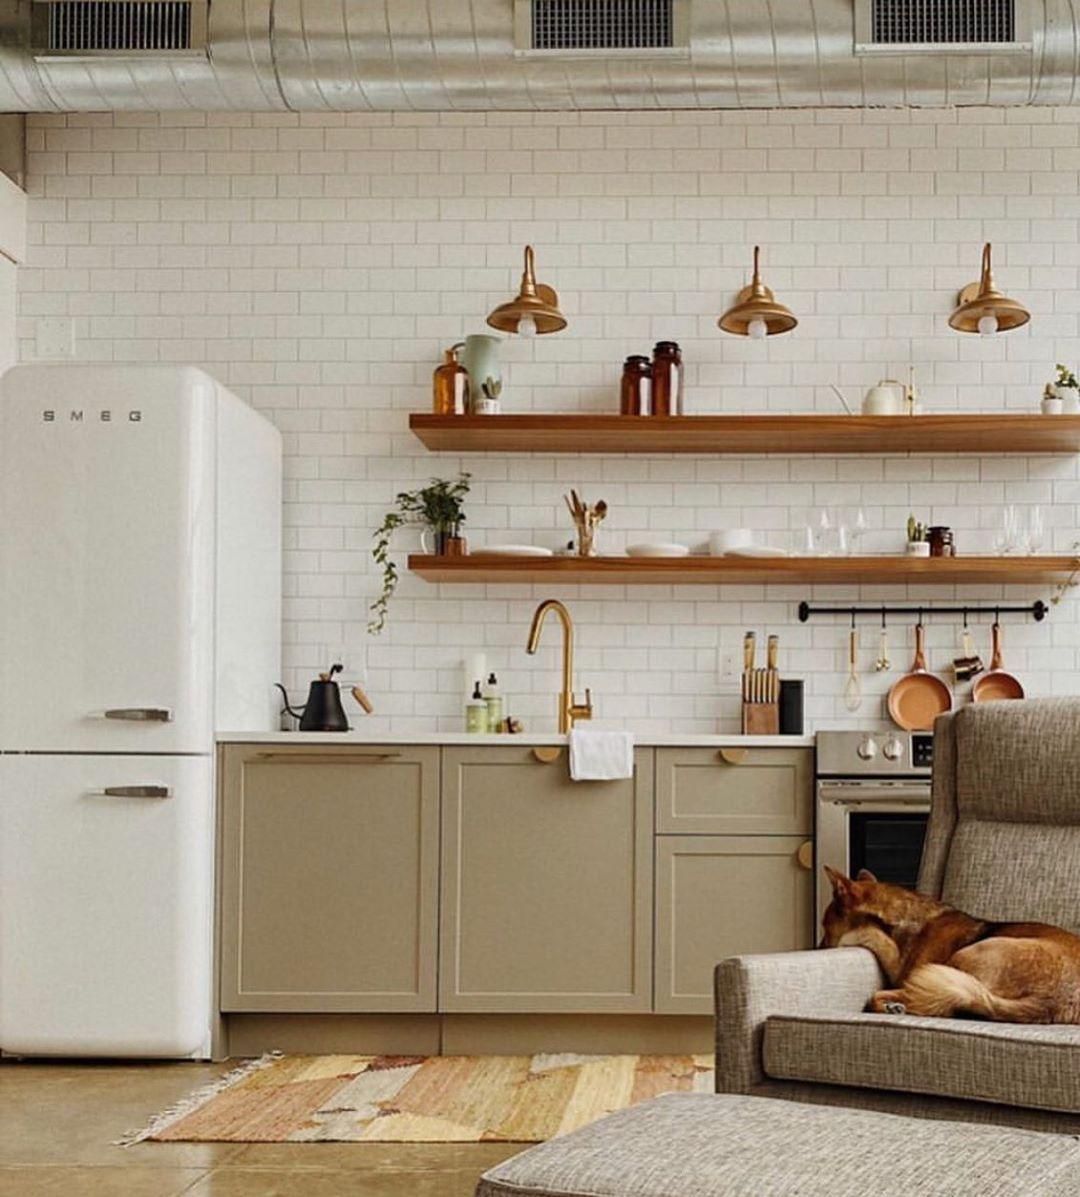 Cute Loft Sneak Peek And From Oaktrailhome In Milwaukee Featuring Our Shaker Doors On In 2020 Kitchen Remodel Modern Farmhouse Kitchens Floating Shelves Kitchen